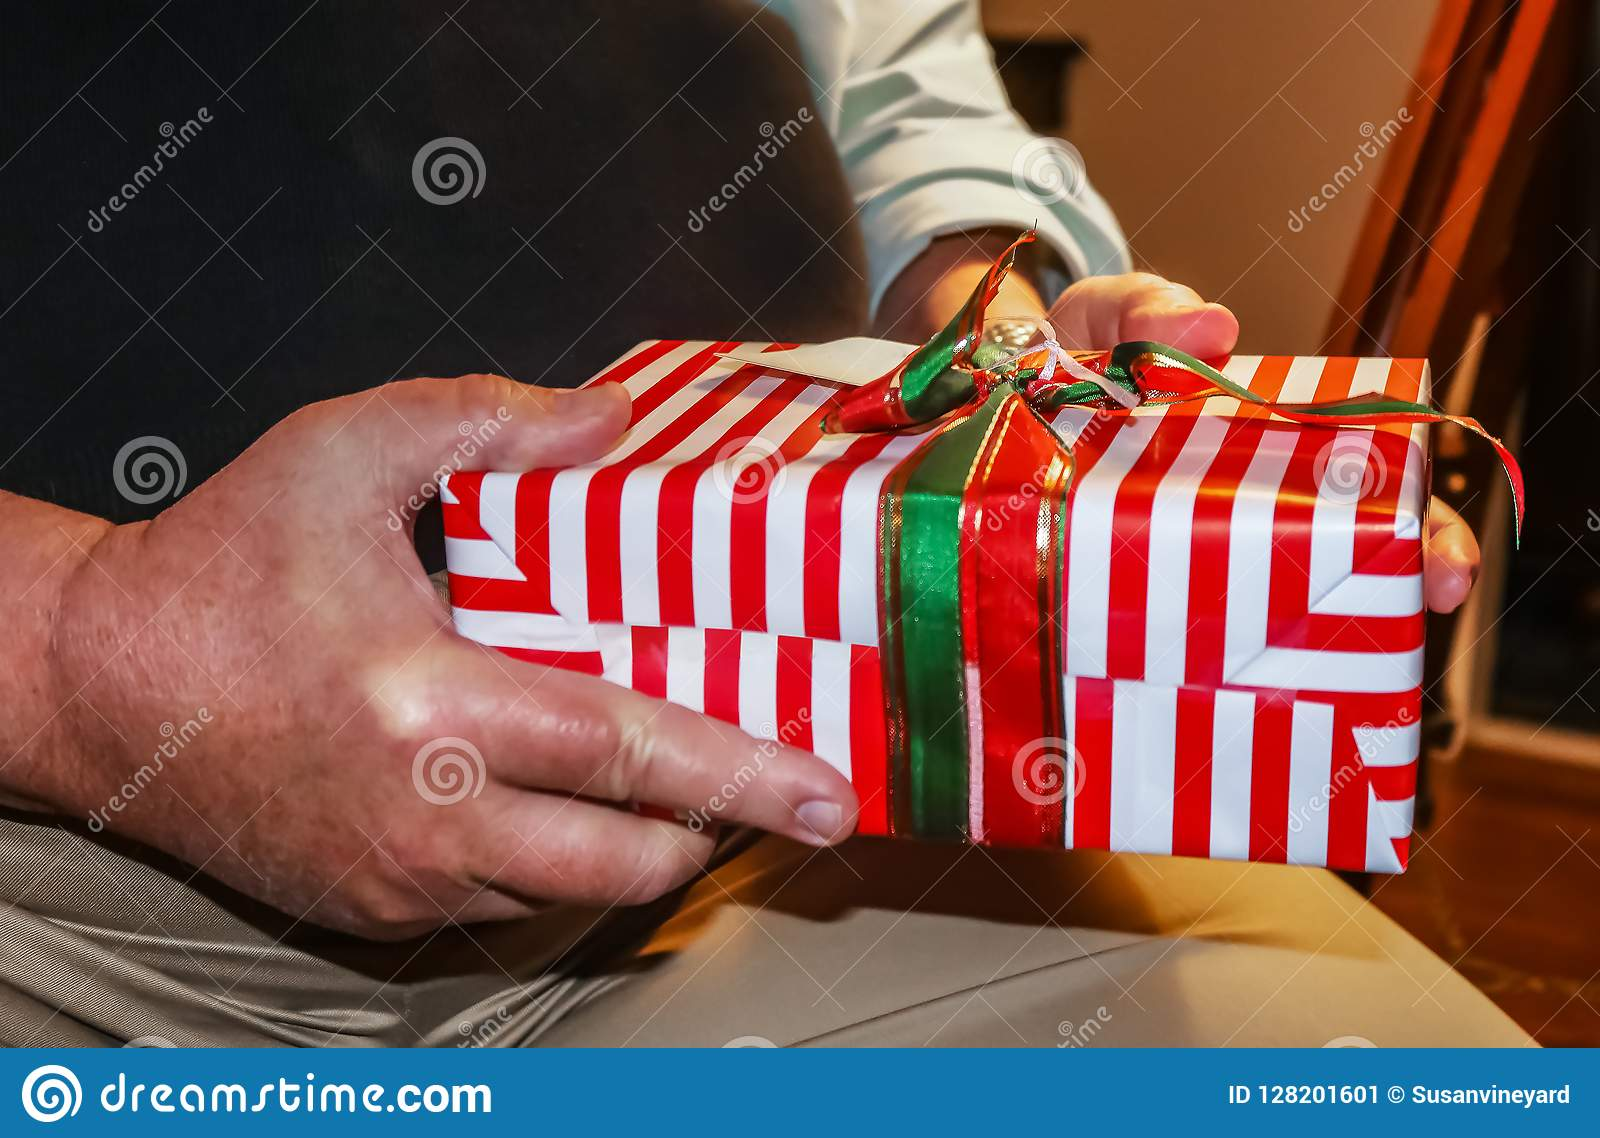 Brightly Wrapped Christmas Present In Hands Of Older Man Closeup